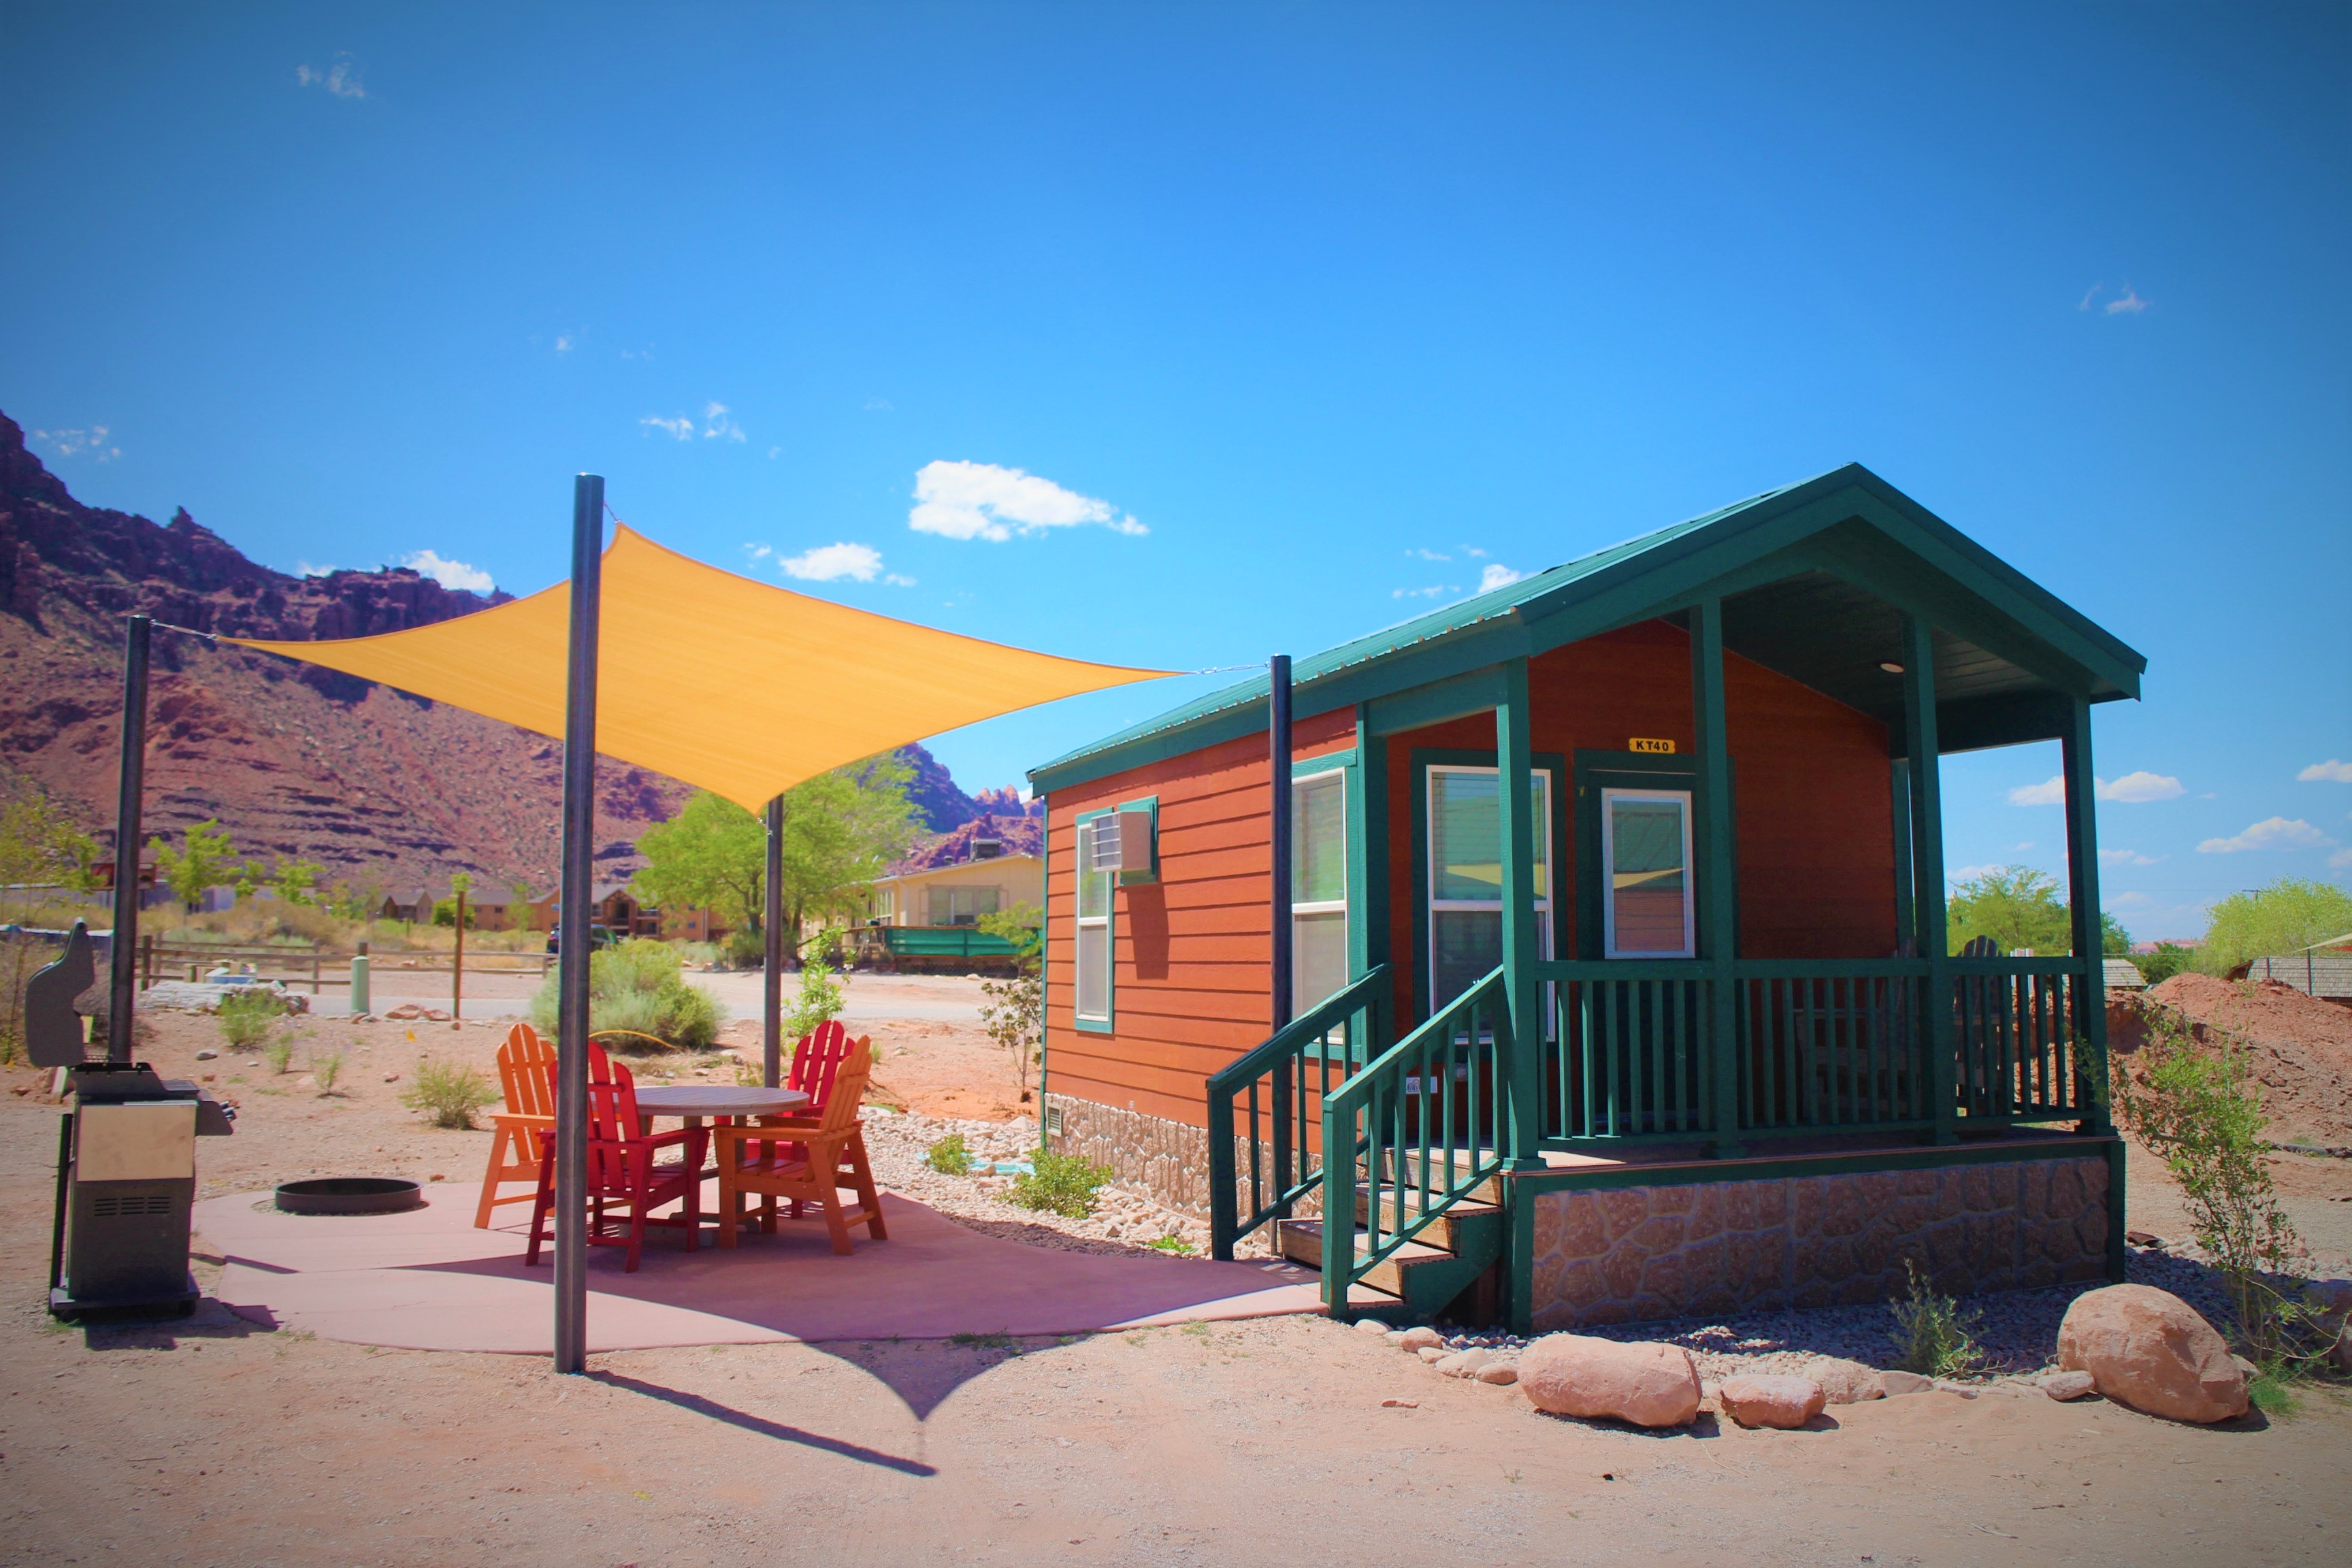 canyon home monticello rentals utah family cabin canyonlands view lodging moab lodge vacation ut cabins s